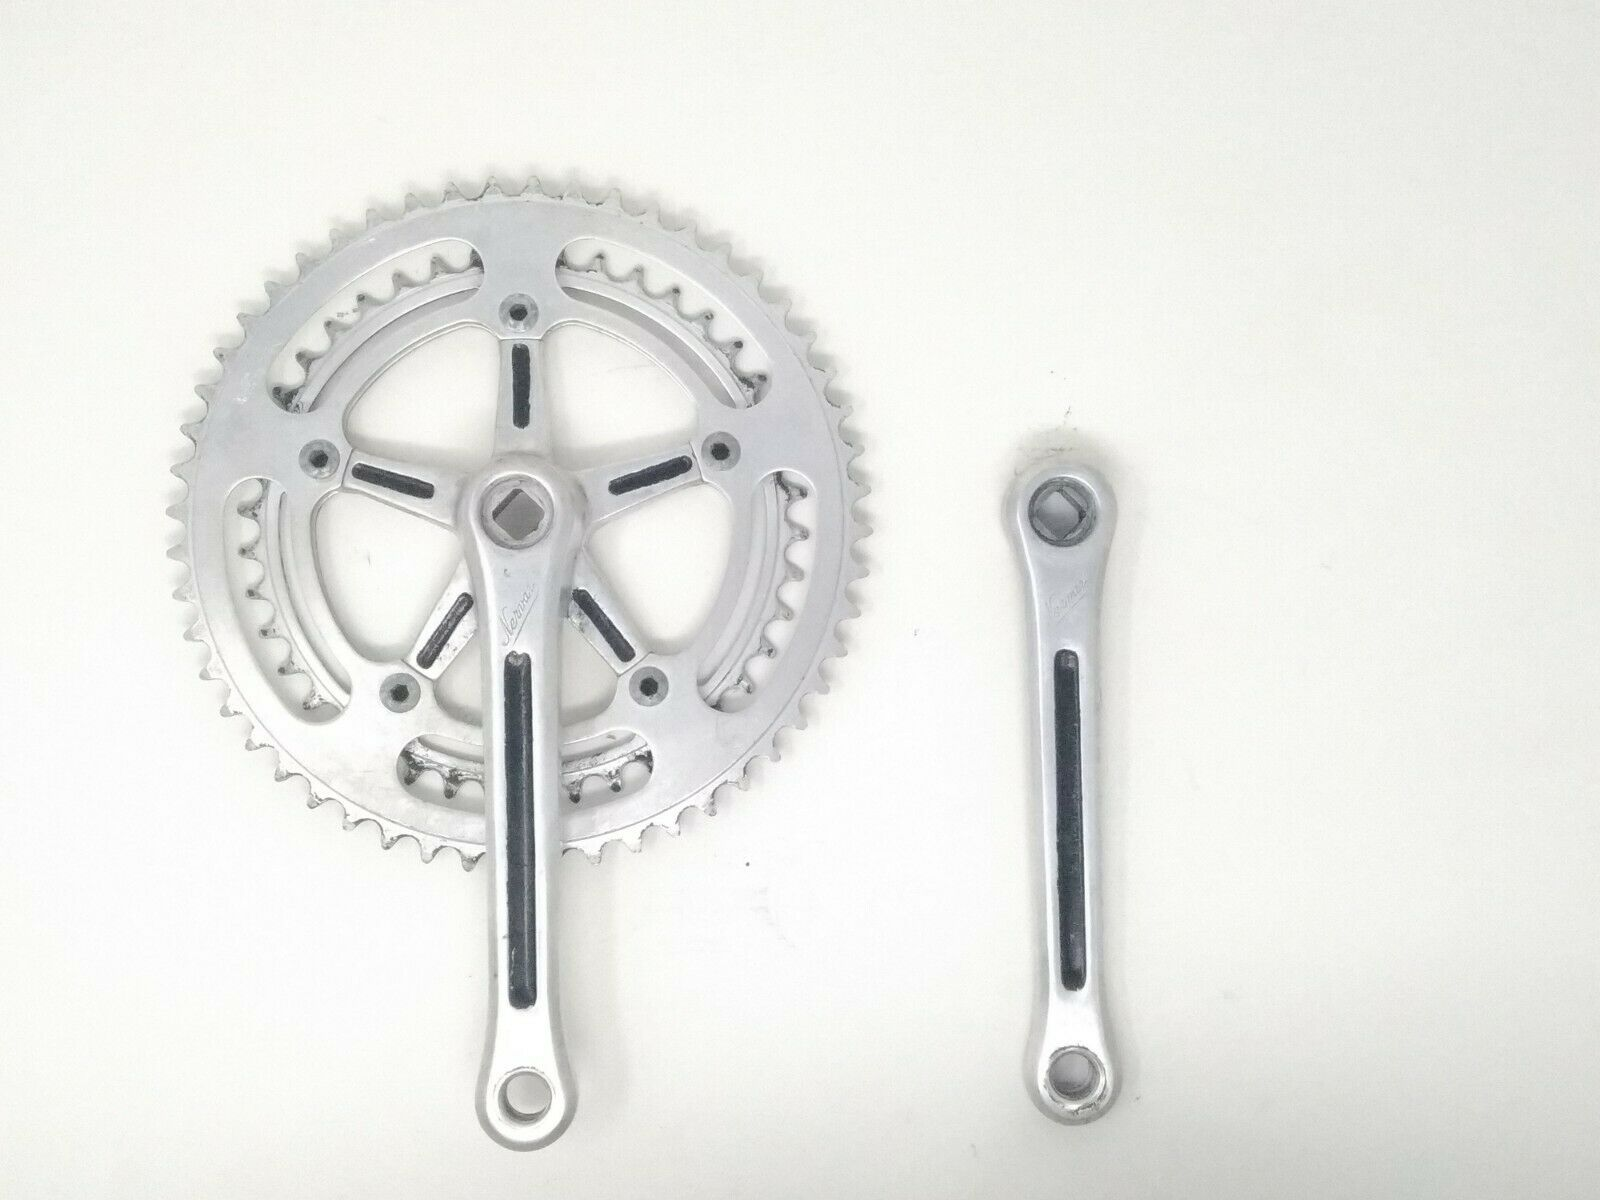 Vintage guarnitura  crankset Nervar BSA 170 42 52  eroica  corsa road bici bike